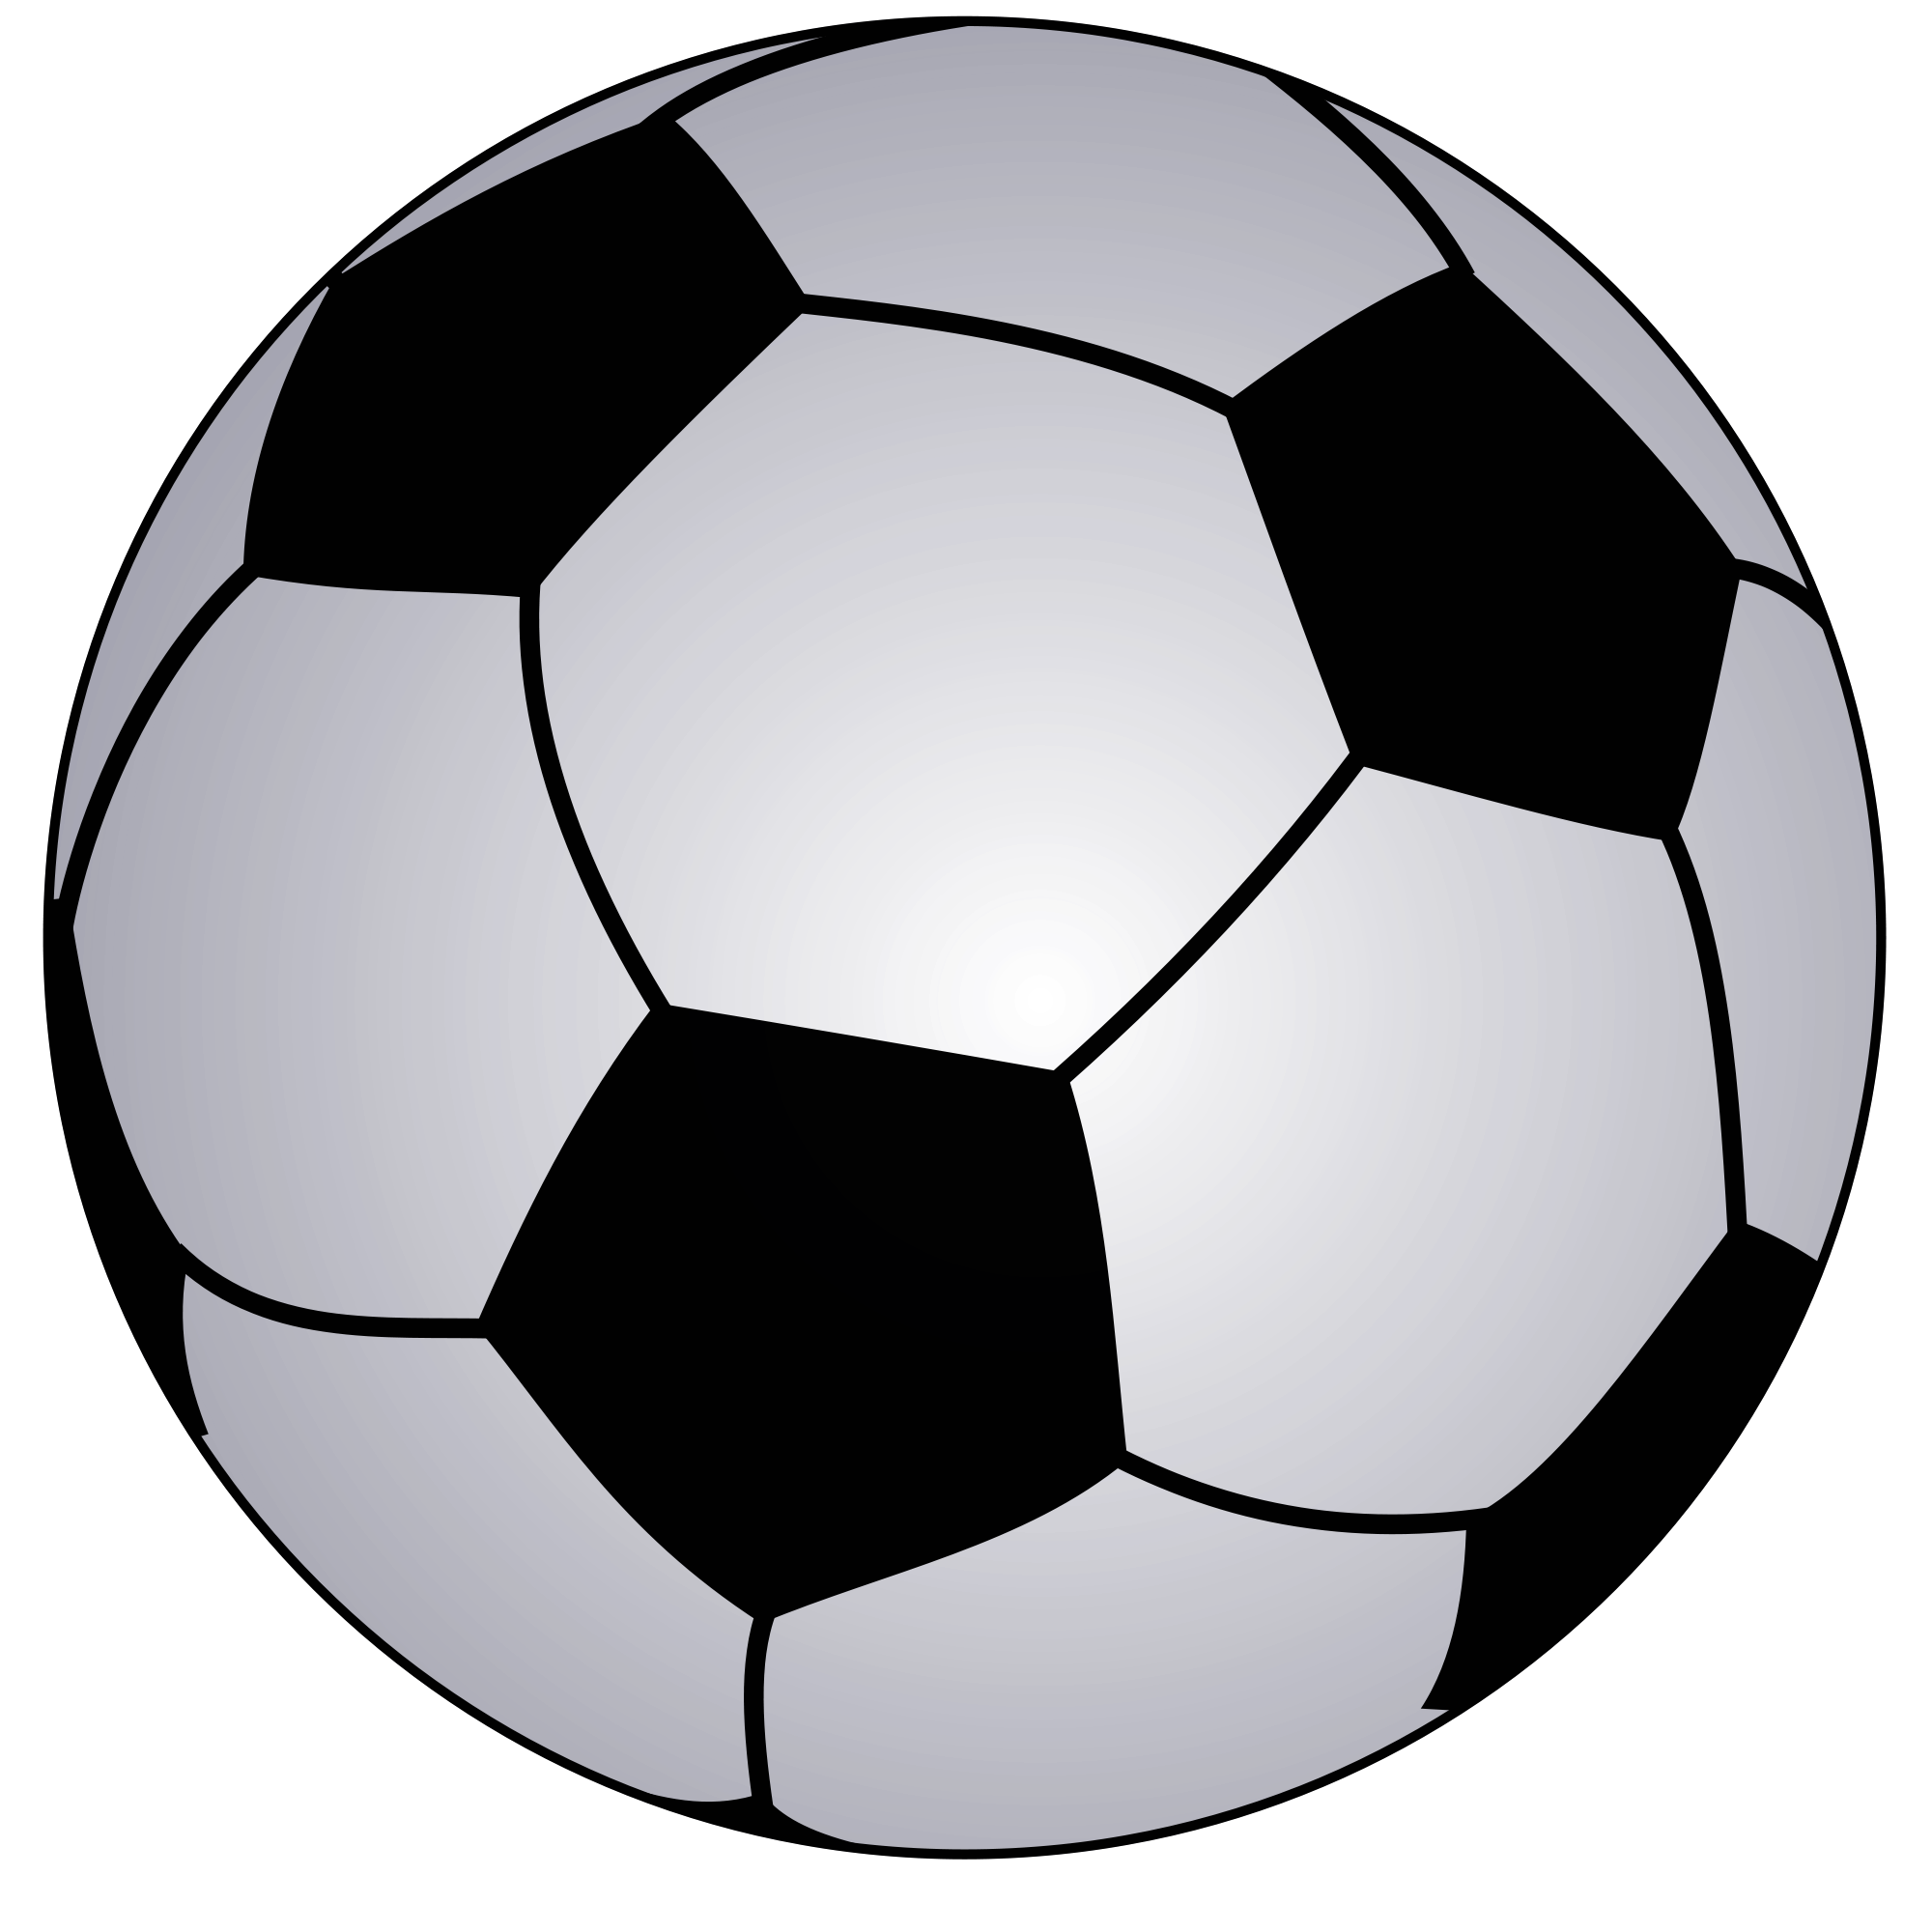 Clipart football, Clipart football Transparent FREE for download on  WebStockReview 2020